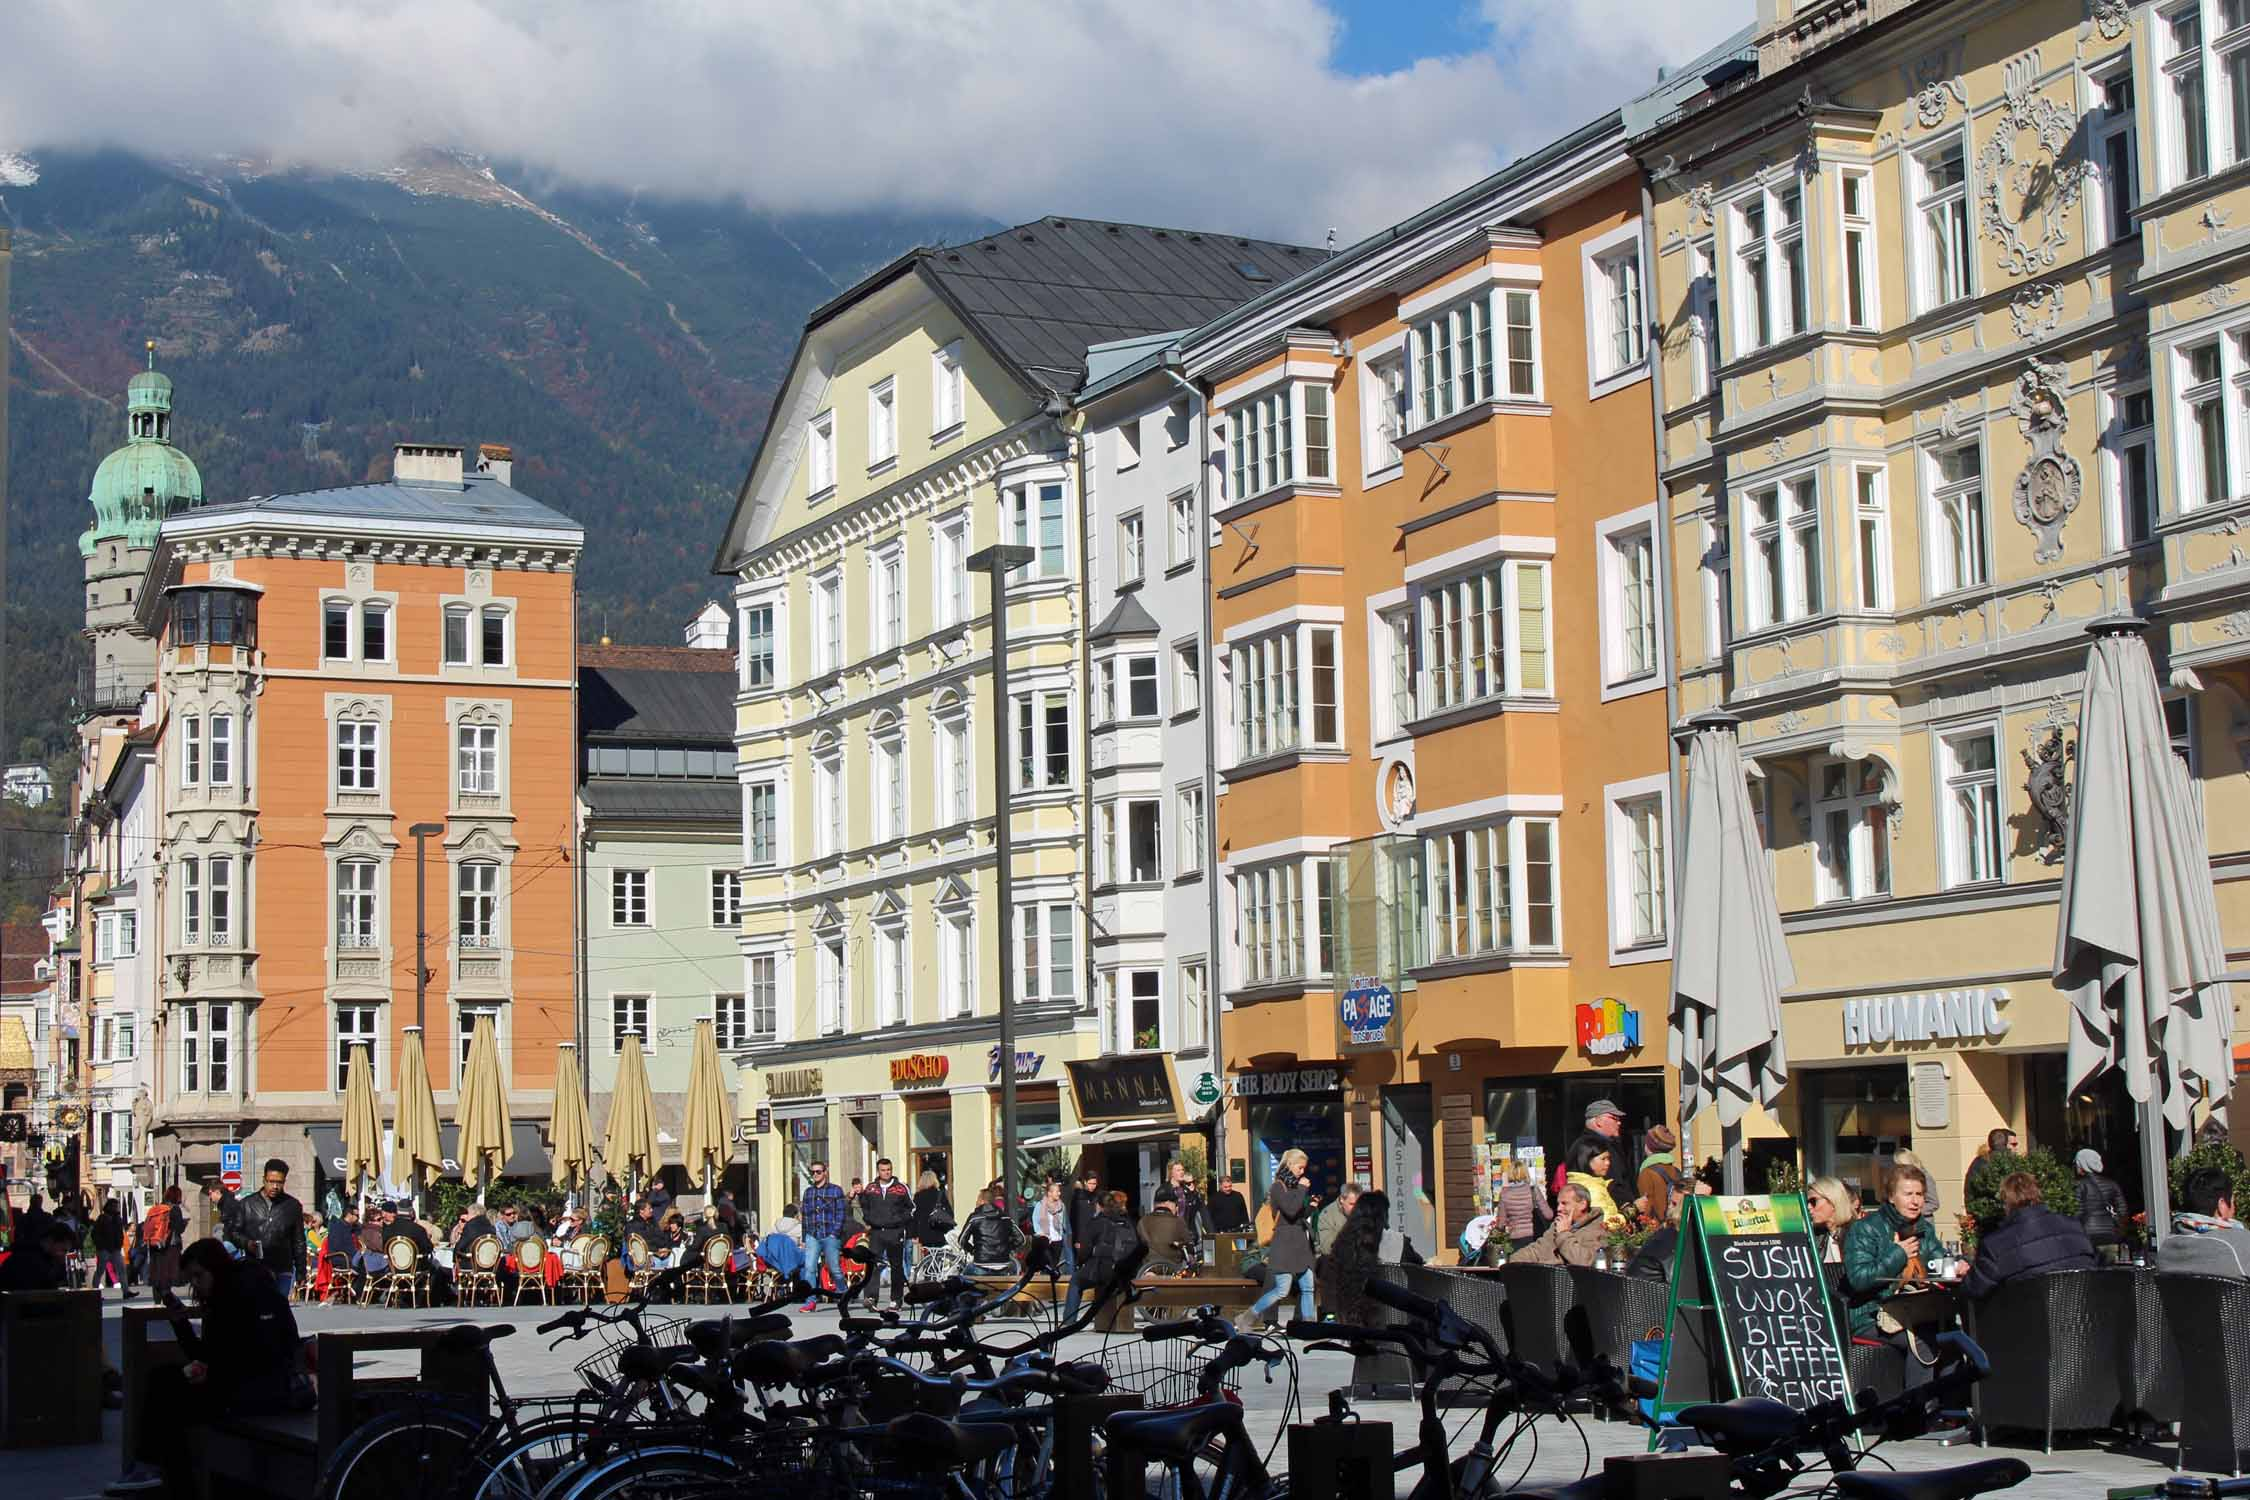 The beautiful old Innsbruck